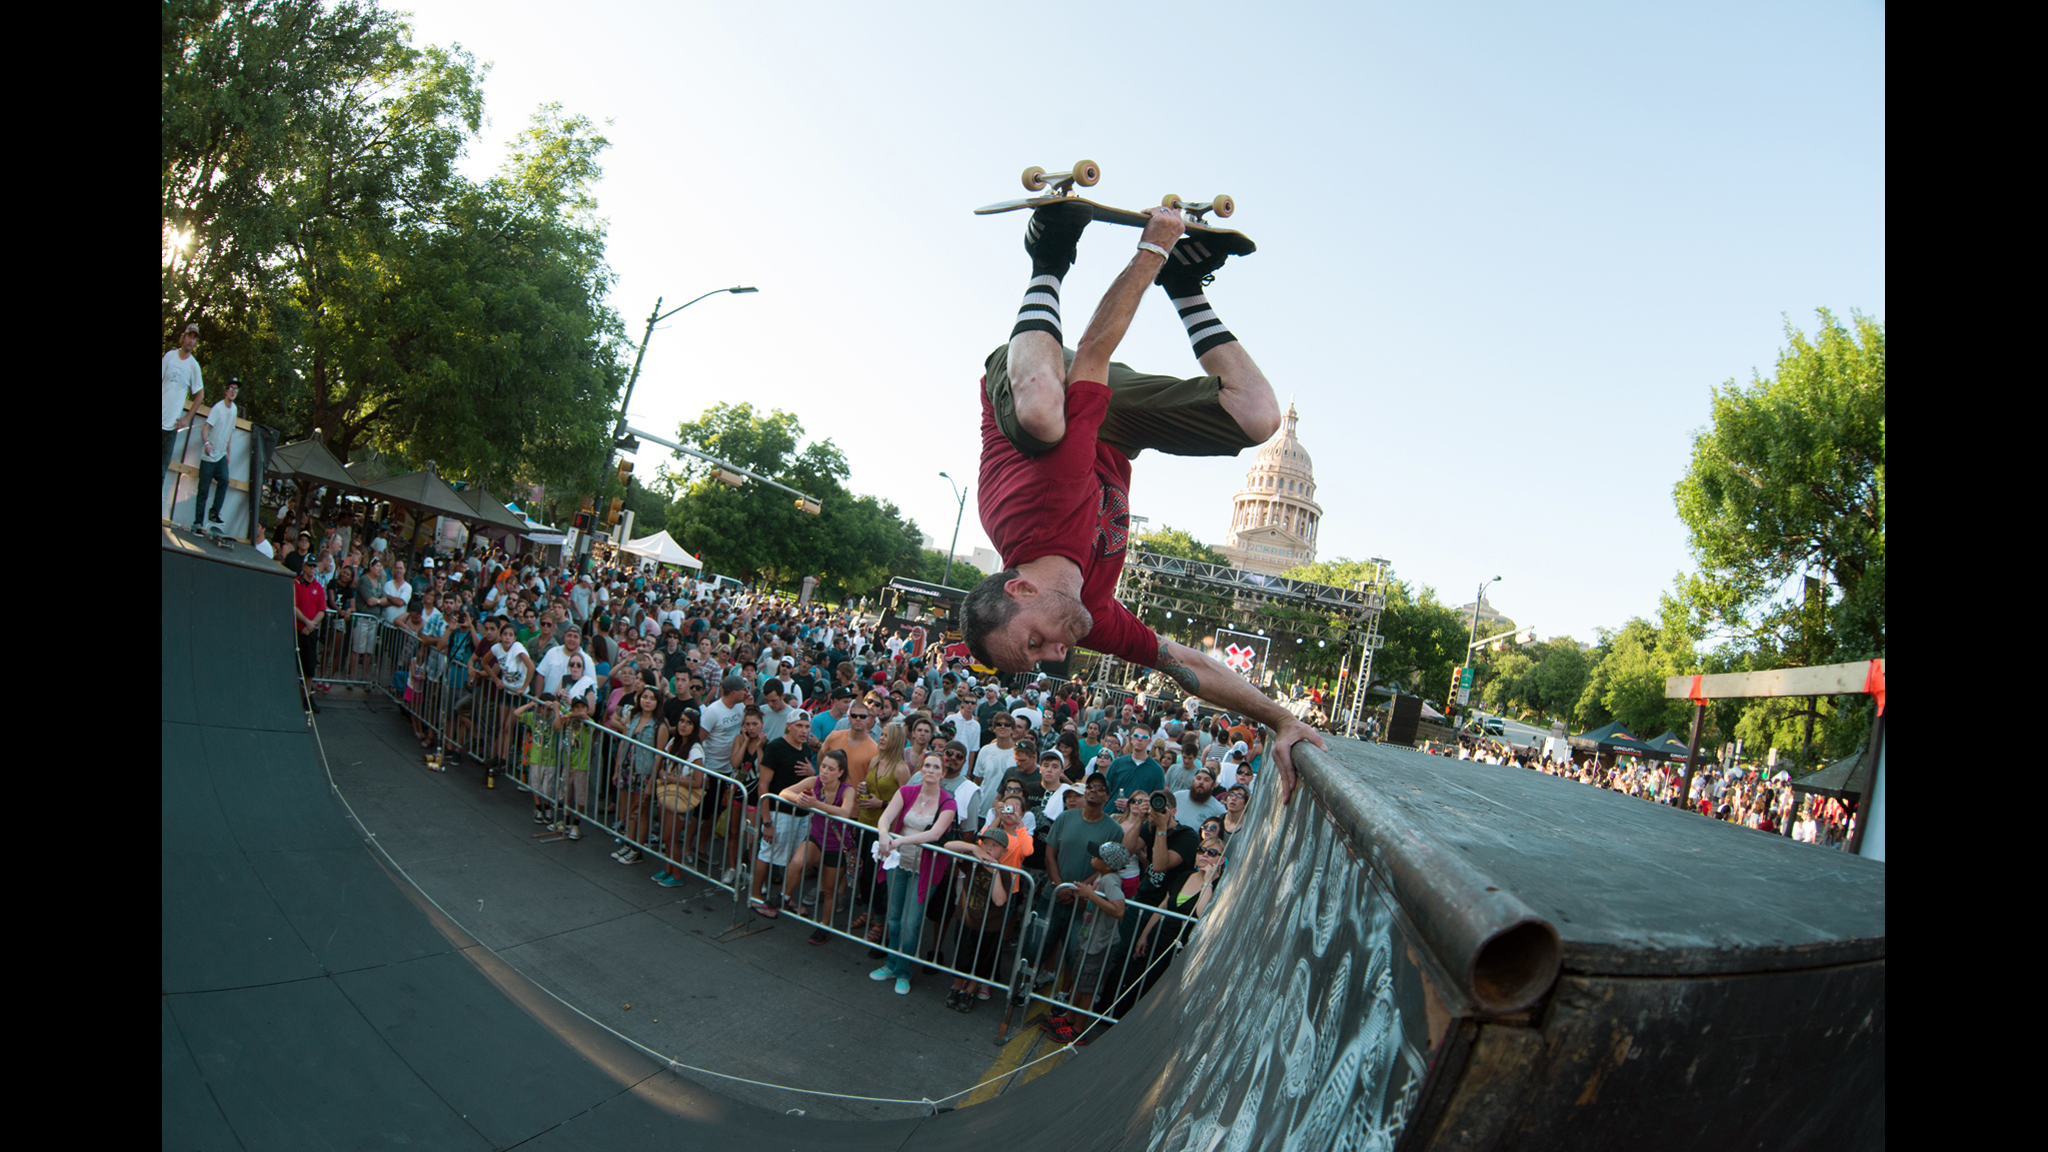 X Games moves to Austin